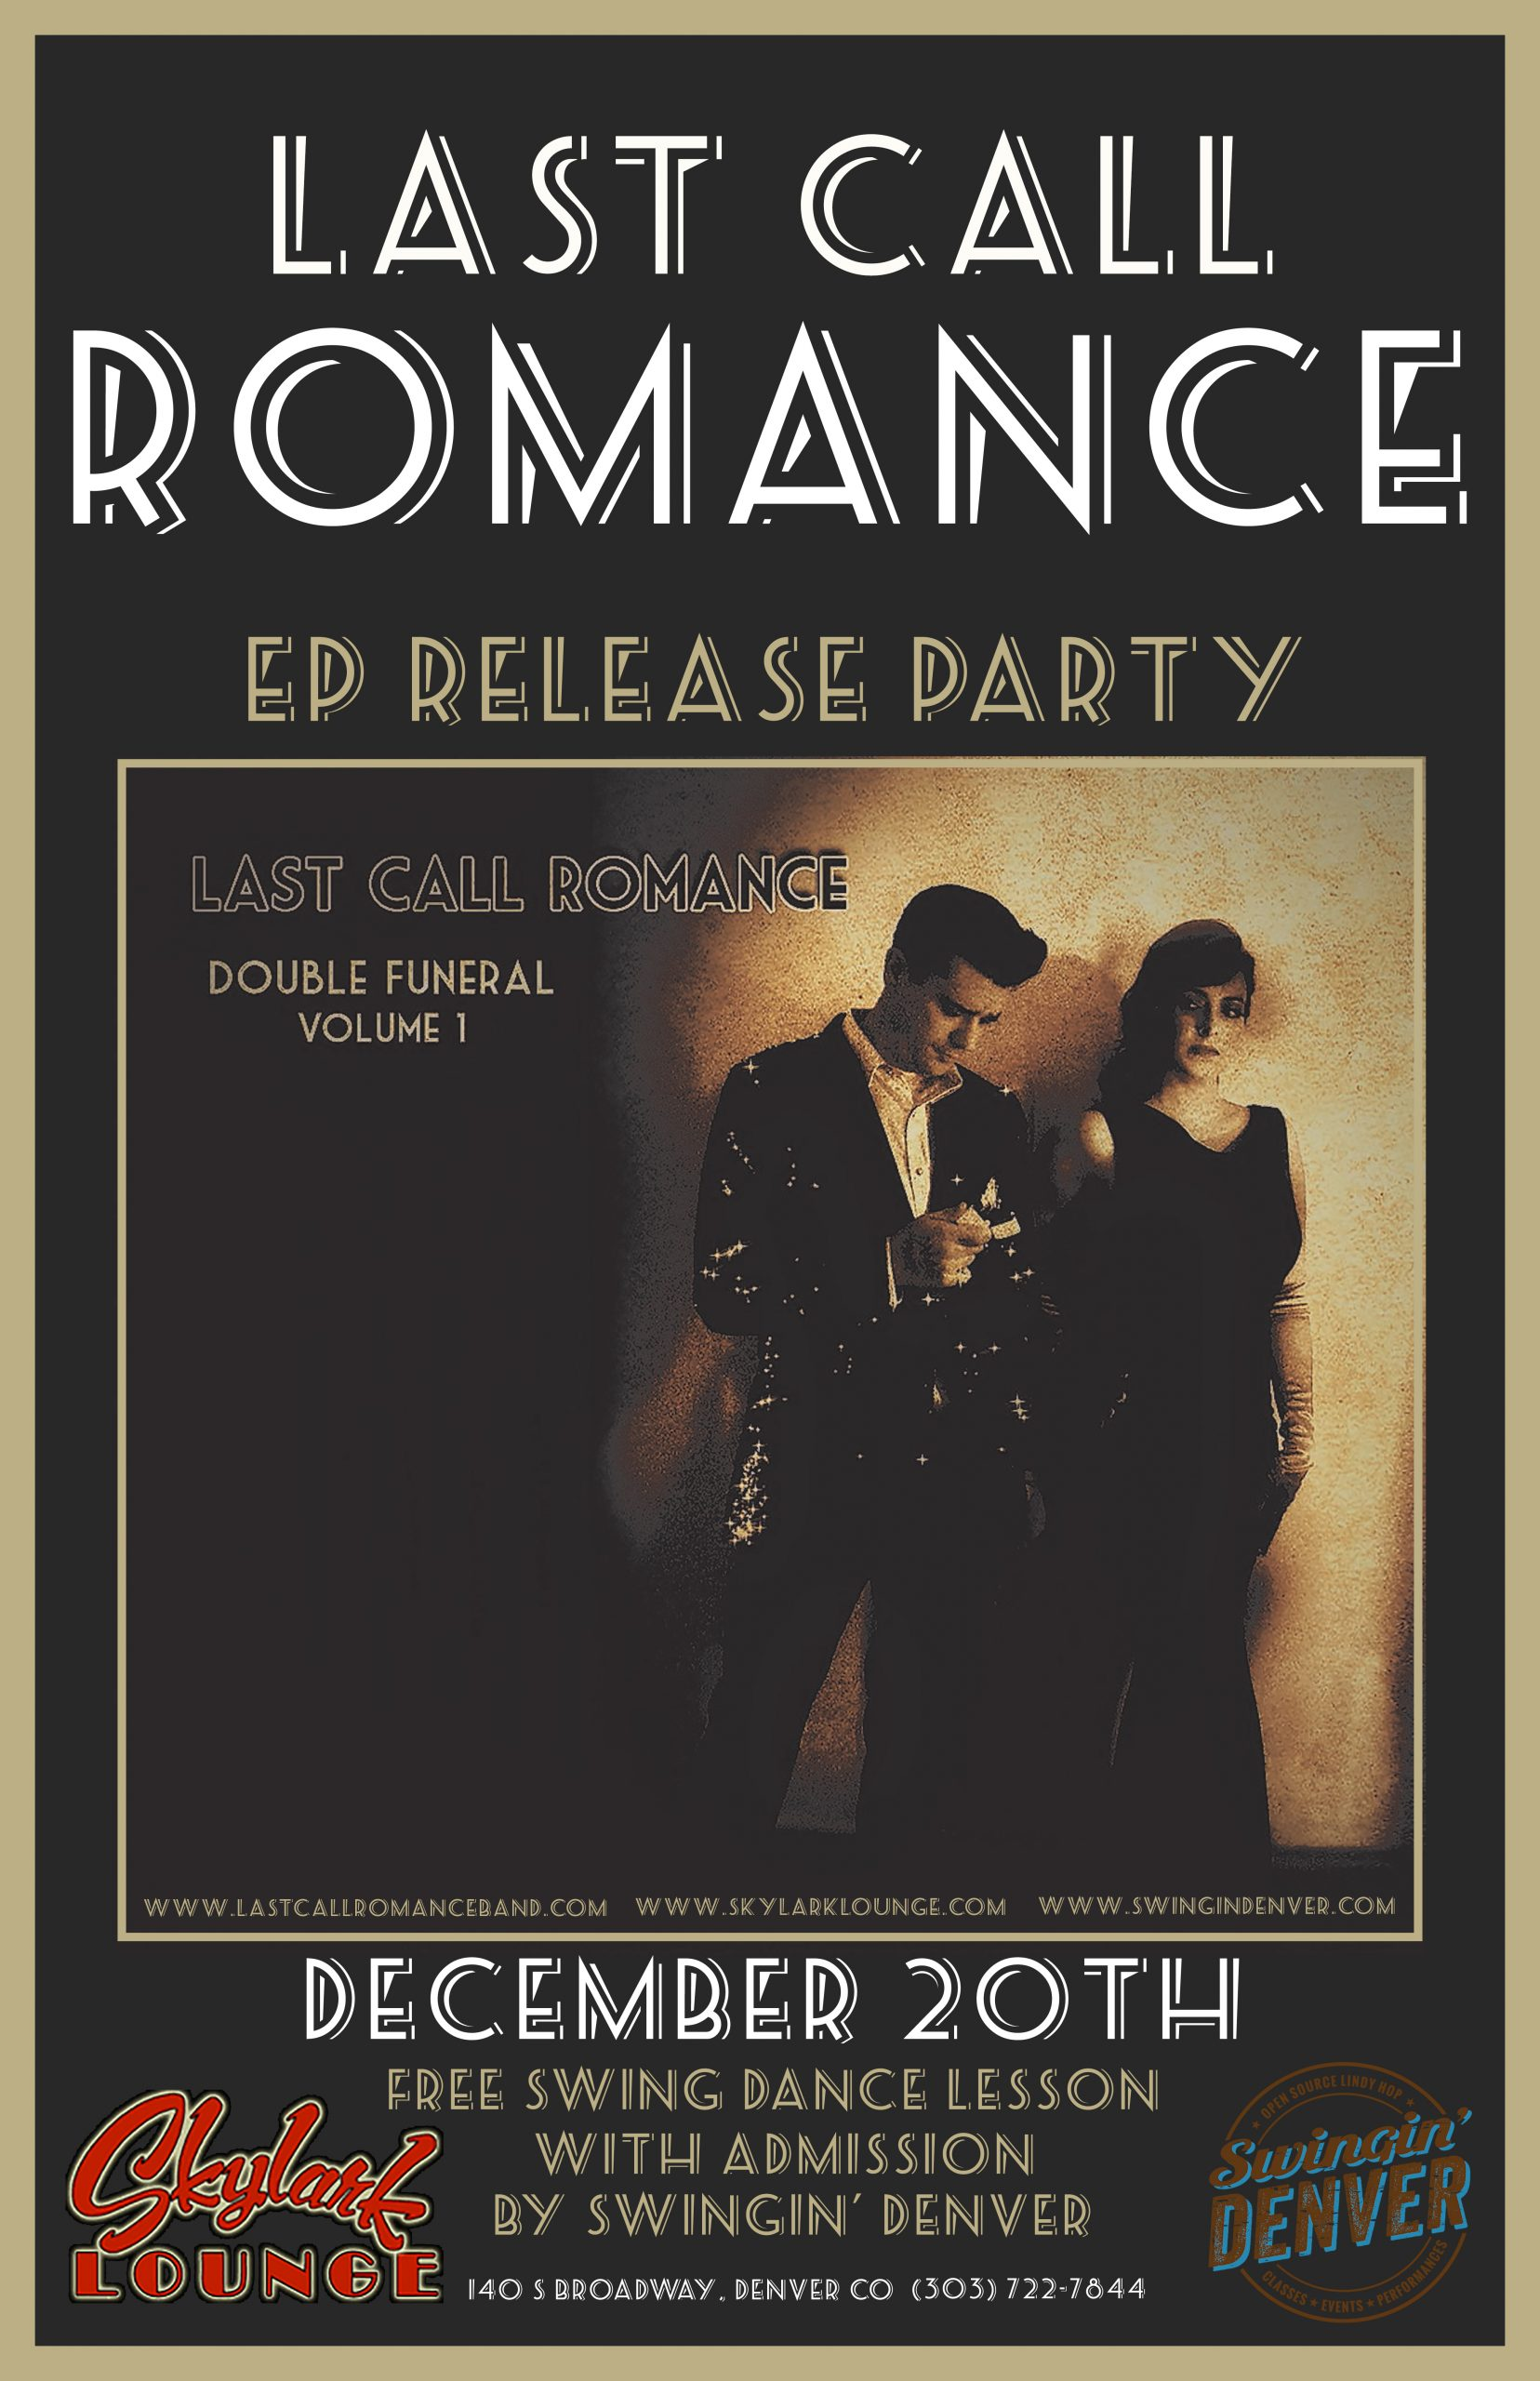 FEATURED MEMBER: New COMBO Members Last Call Romance Has EP Release Party Set in Denver Dec. 20th